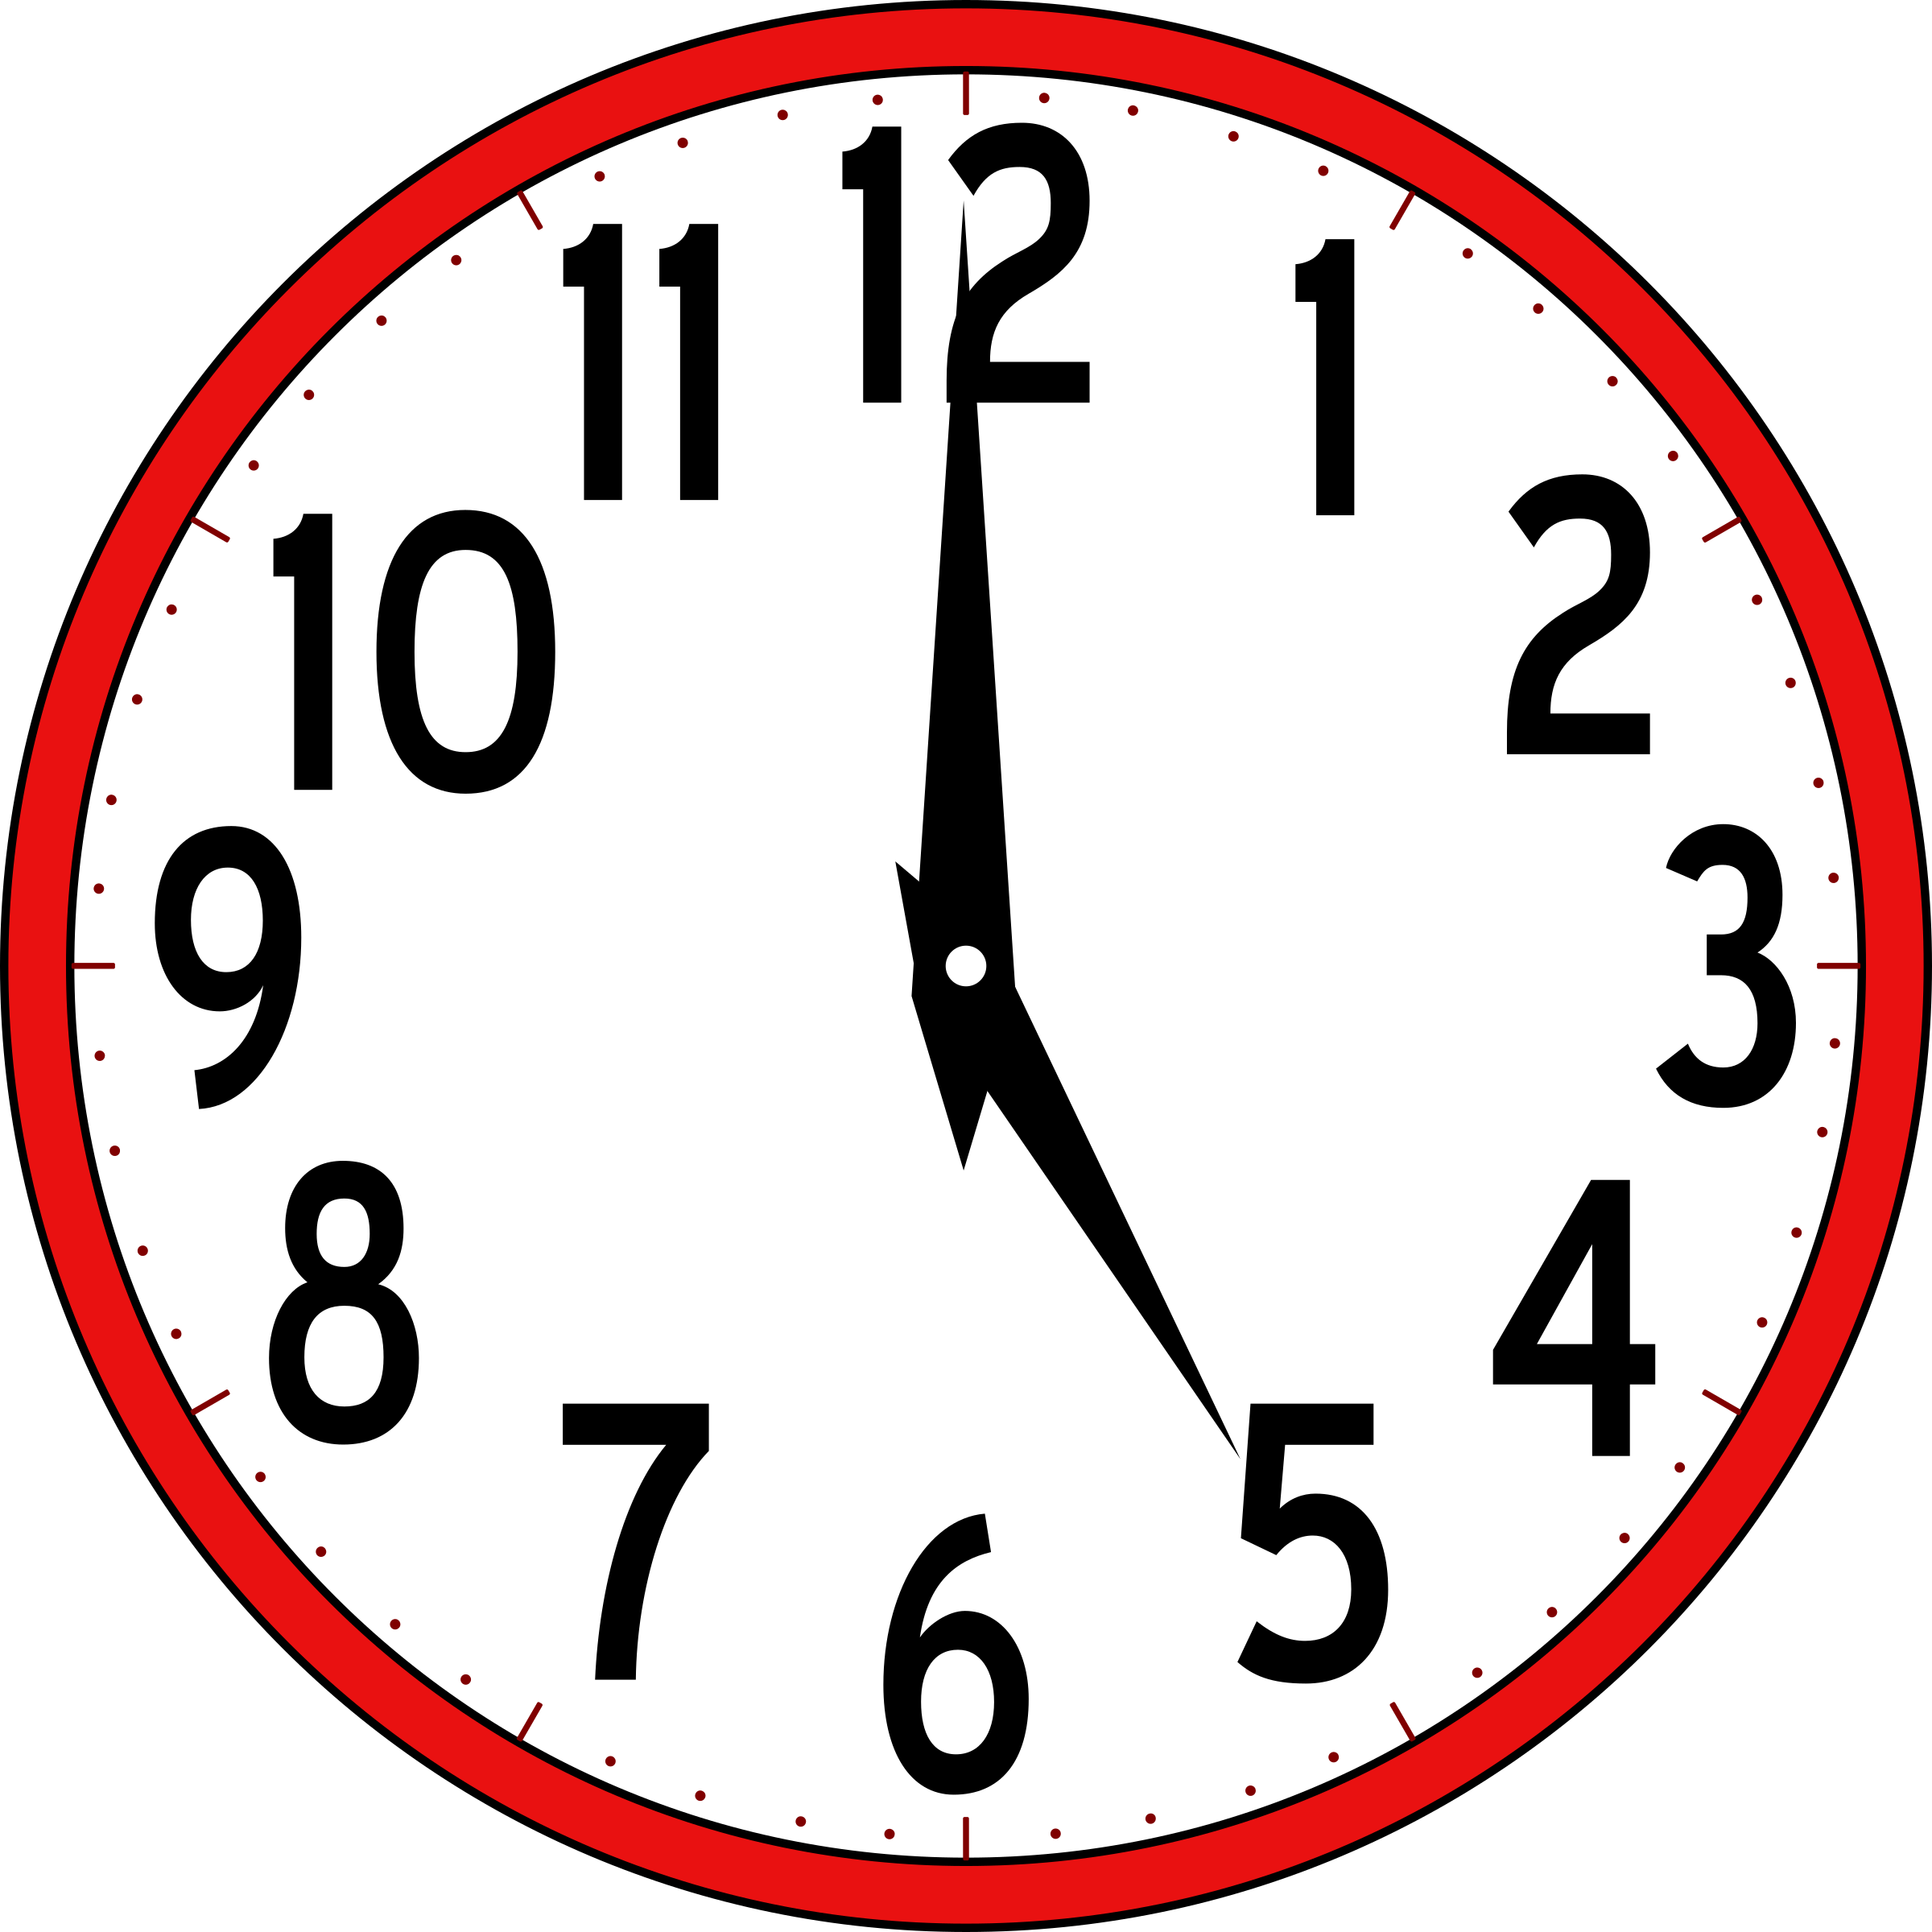 2400x2400 Clock Terrific Clock Image Design Picture Of A Clock Face, Free